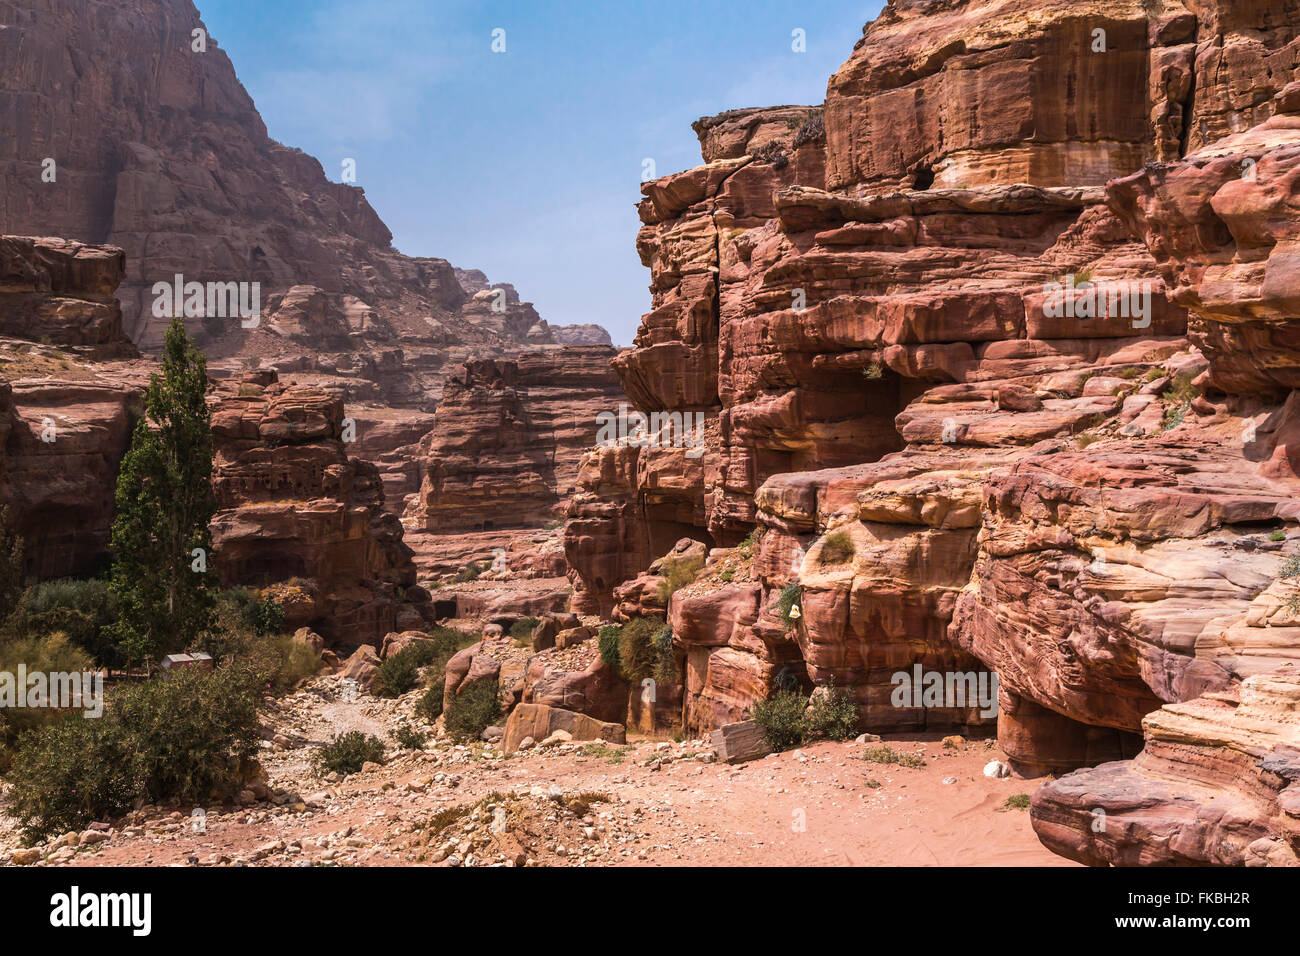 Rock formations in the carved red rock city of Petra, Hashemite Kingdom of Jordan. - Stock Image